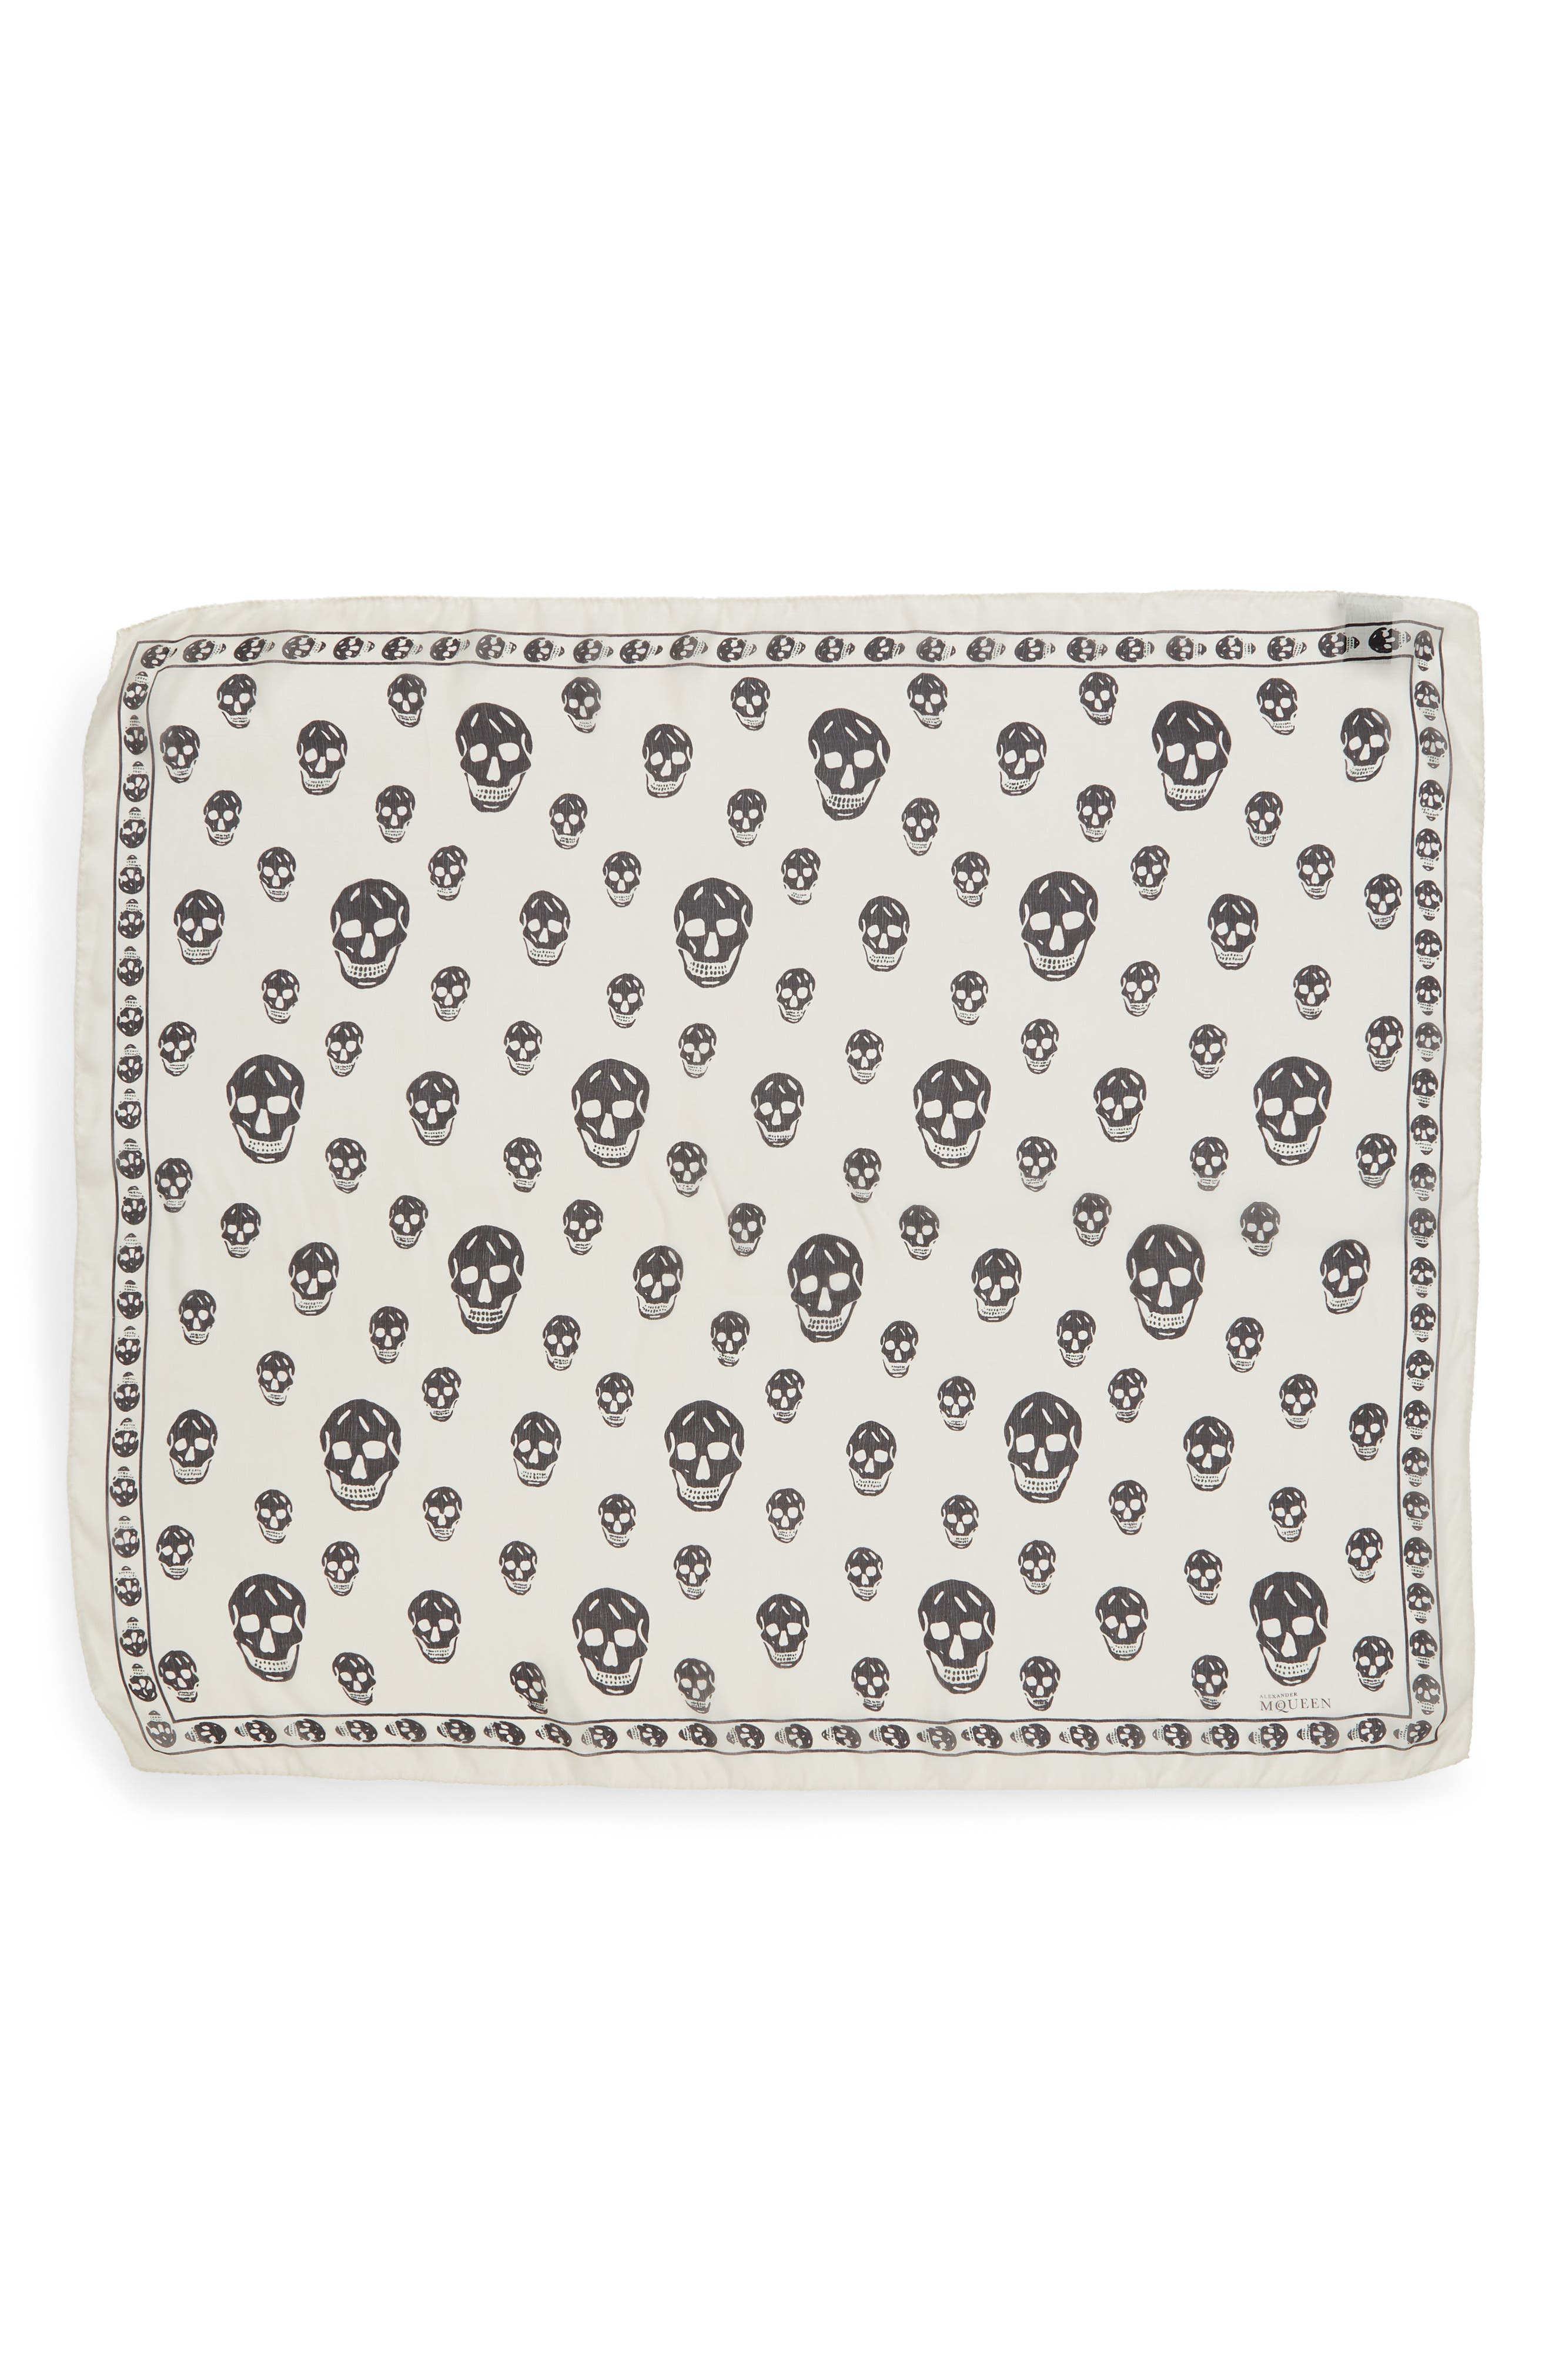 Alternate Image 1 Selected - Alexander McQueen 'Skull' Chiffon Scarf